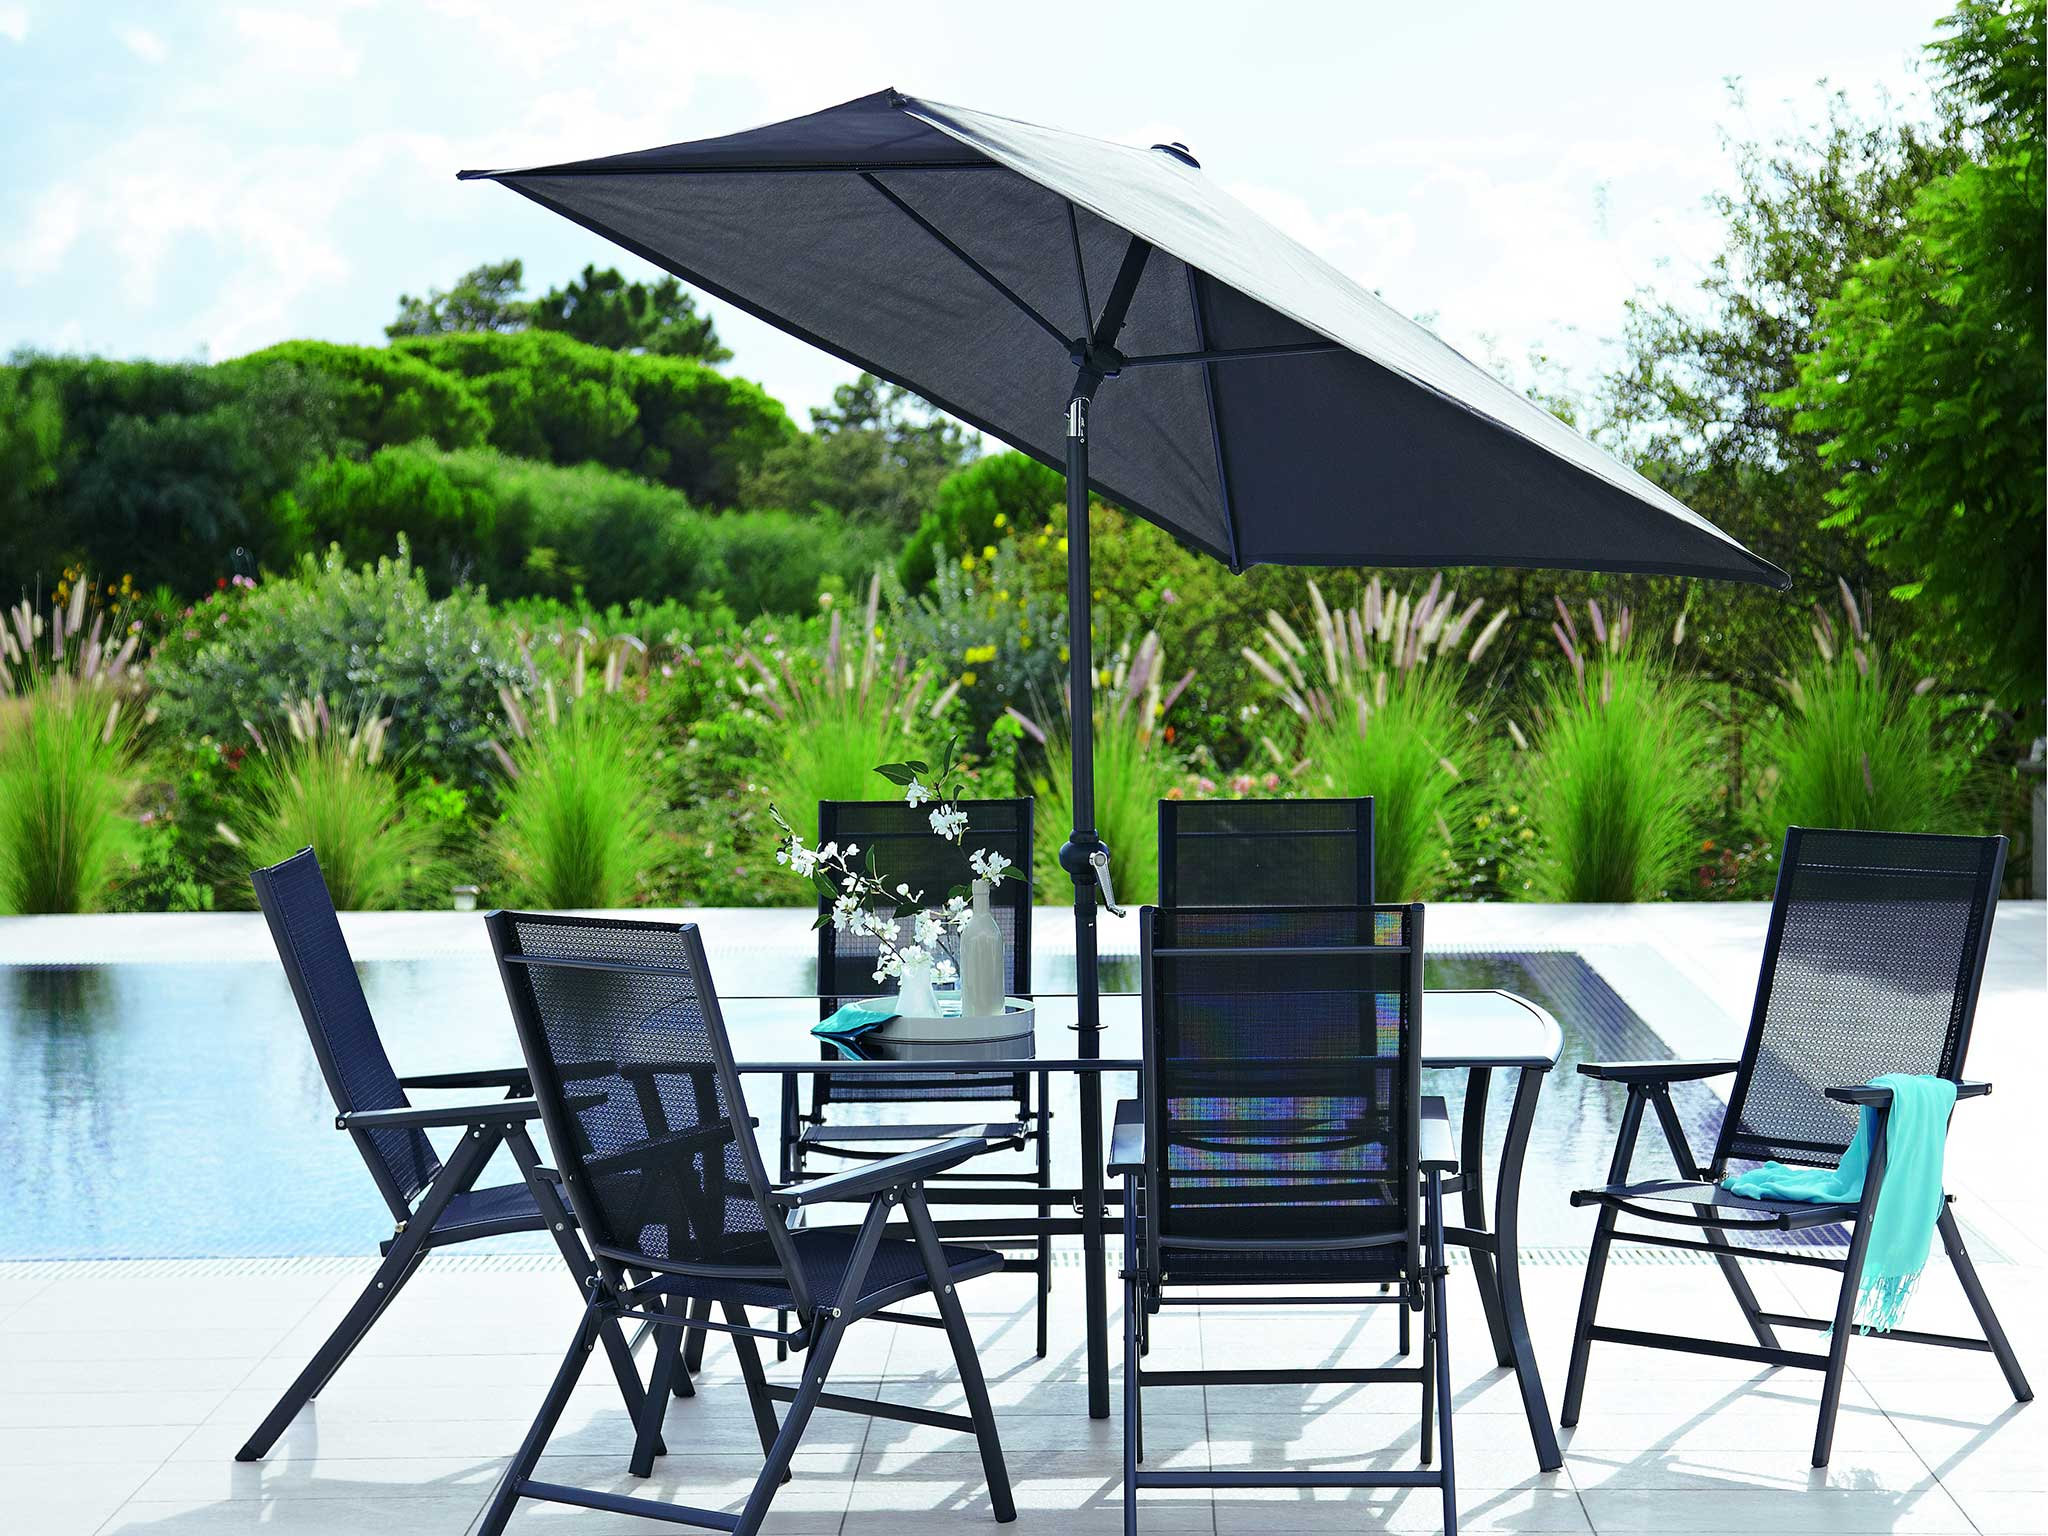 Eat al fresco: 10 best outdoor dining sets | The Independent